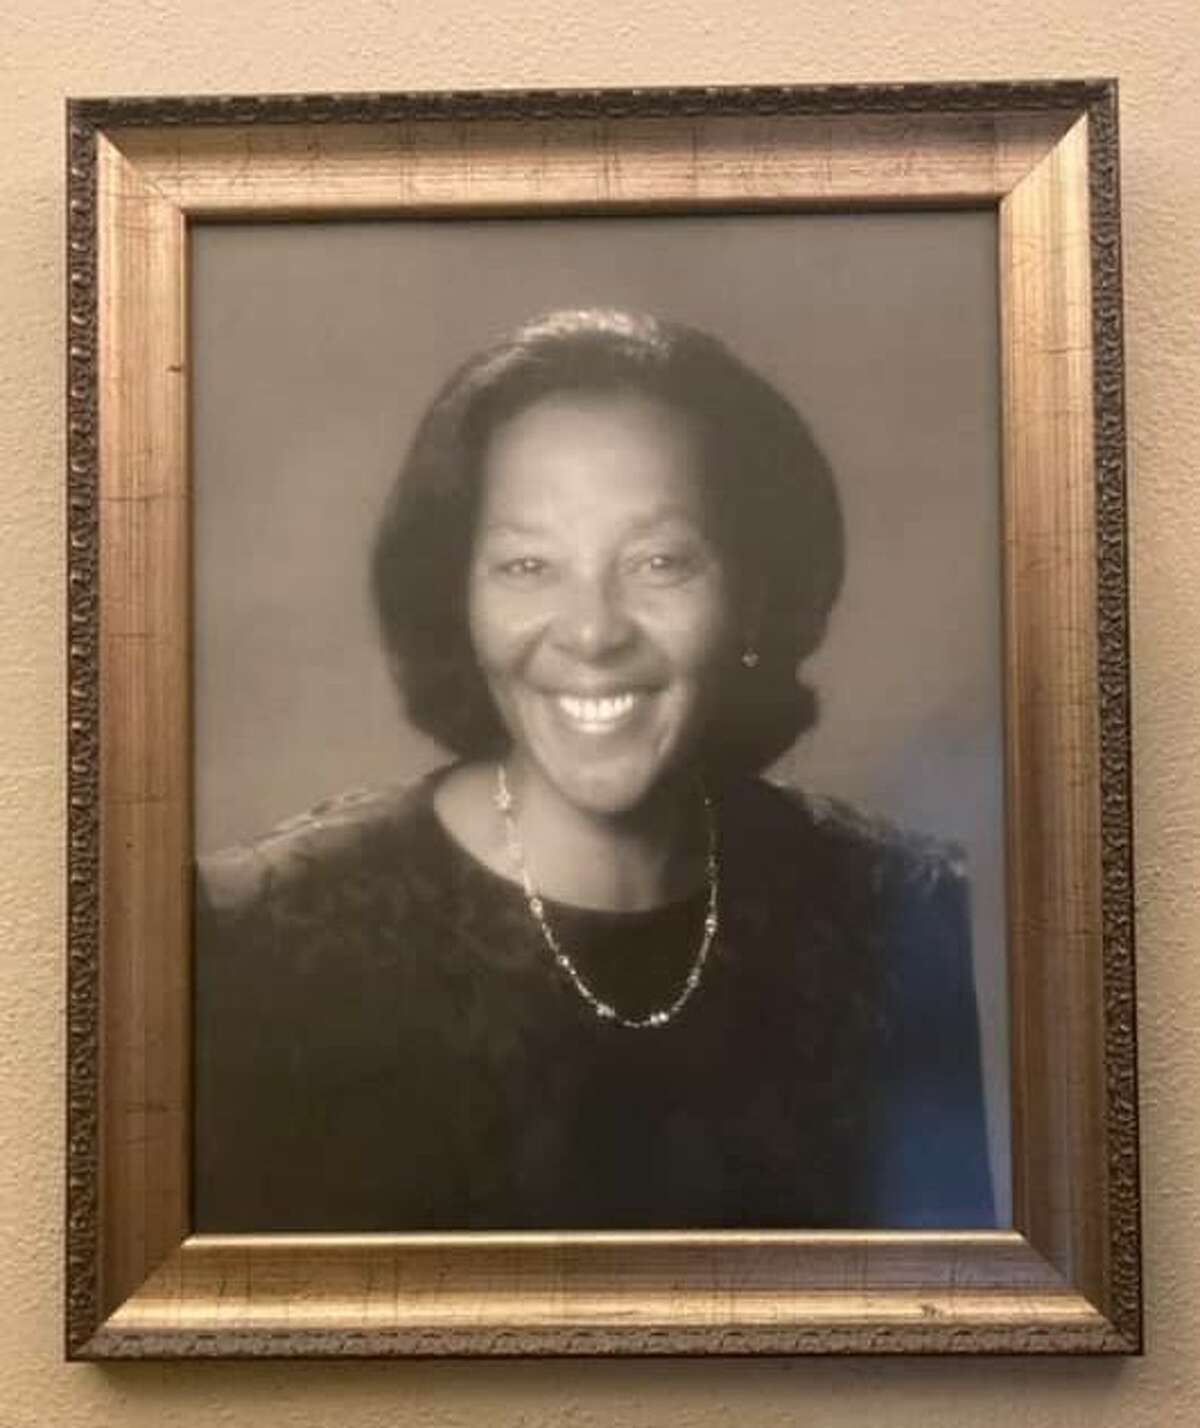 Jo Long served as Executive Director of San Antonio's Carver Community Cultural Center from 1979 to her retirement in 2000.